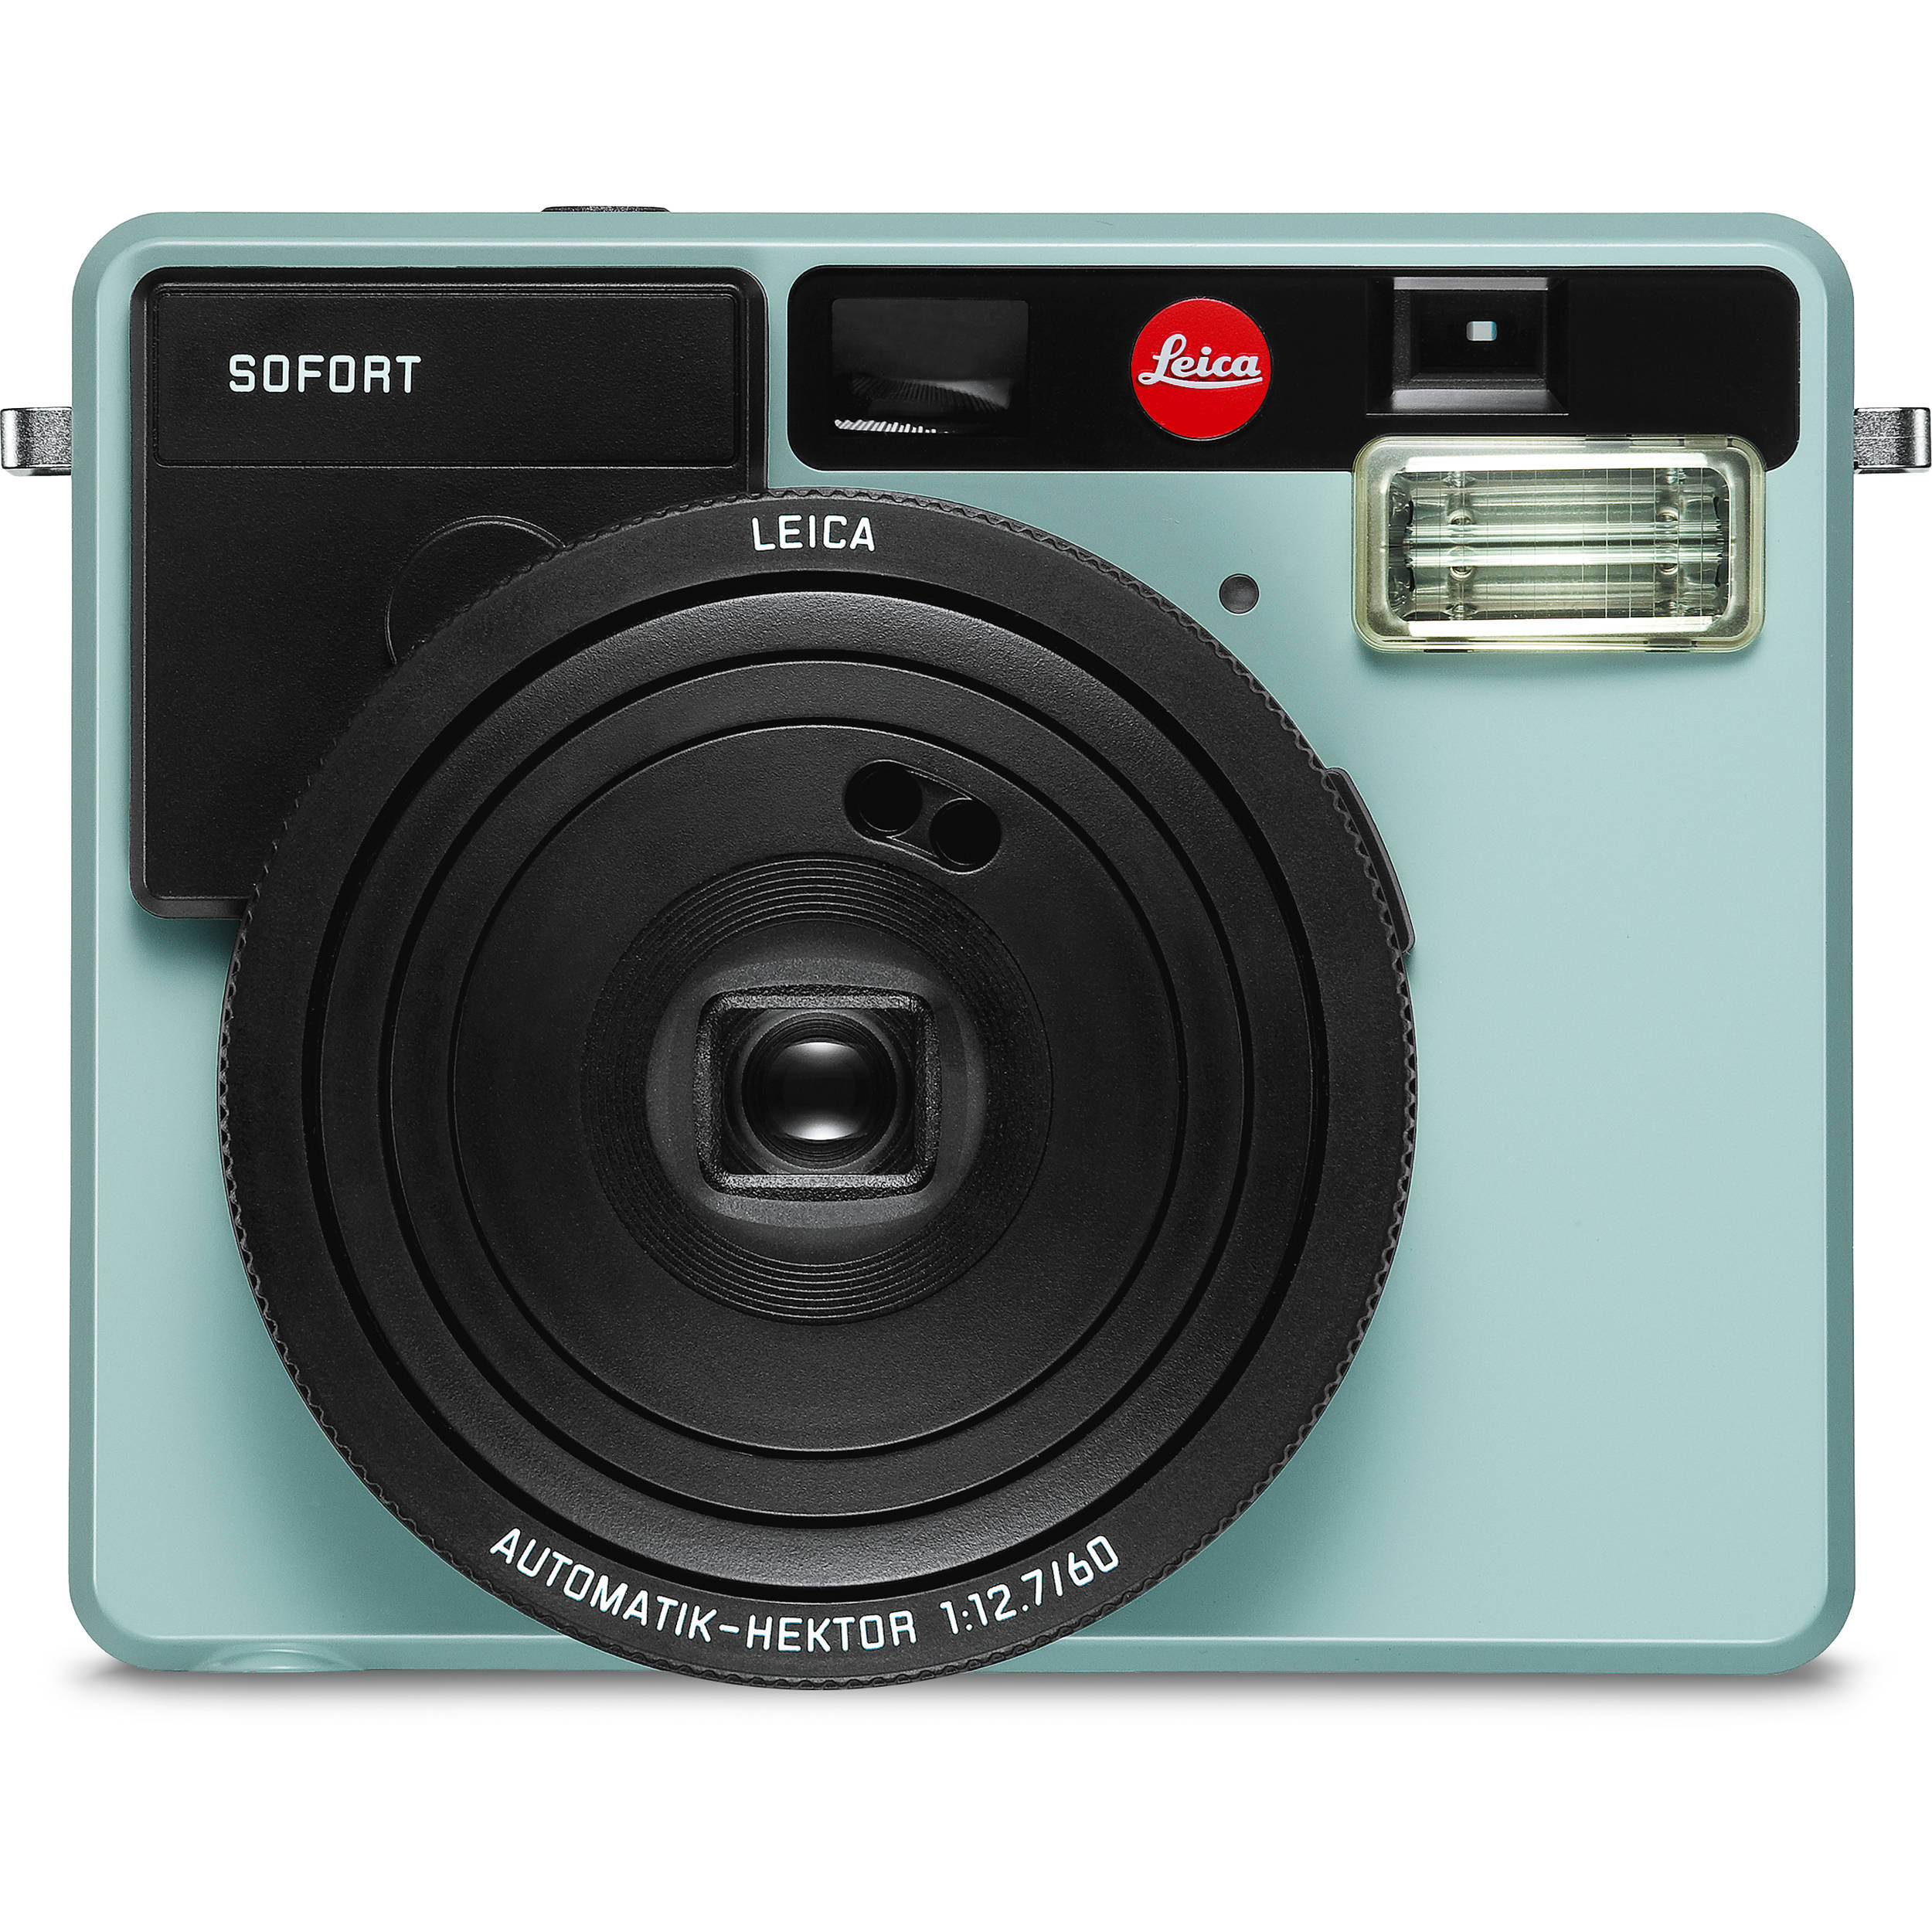 Leica Sofort Instant Film Camera (Mint) 19101 B&H Photo Video